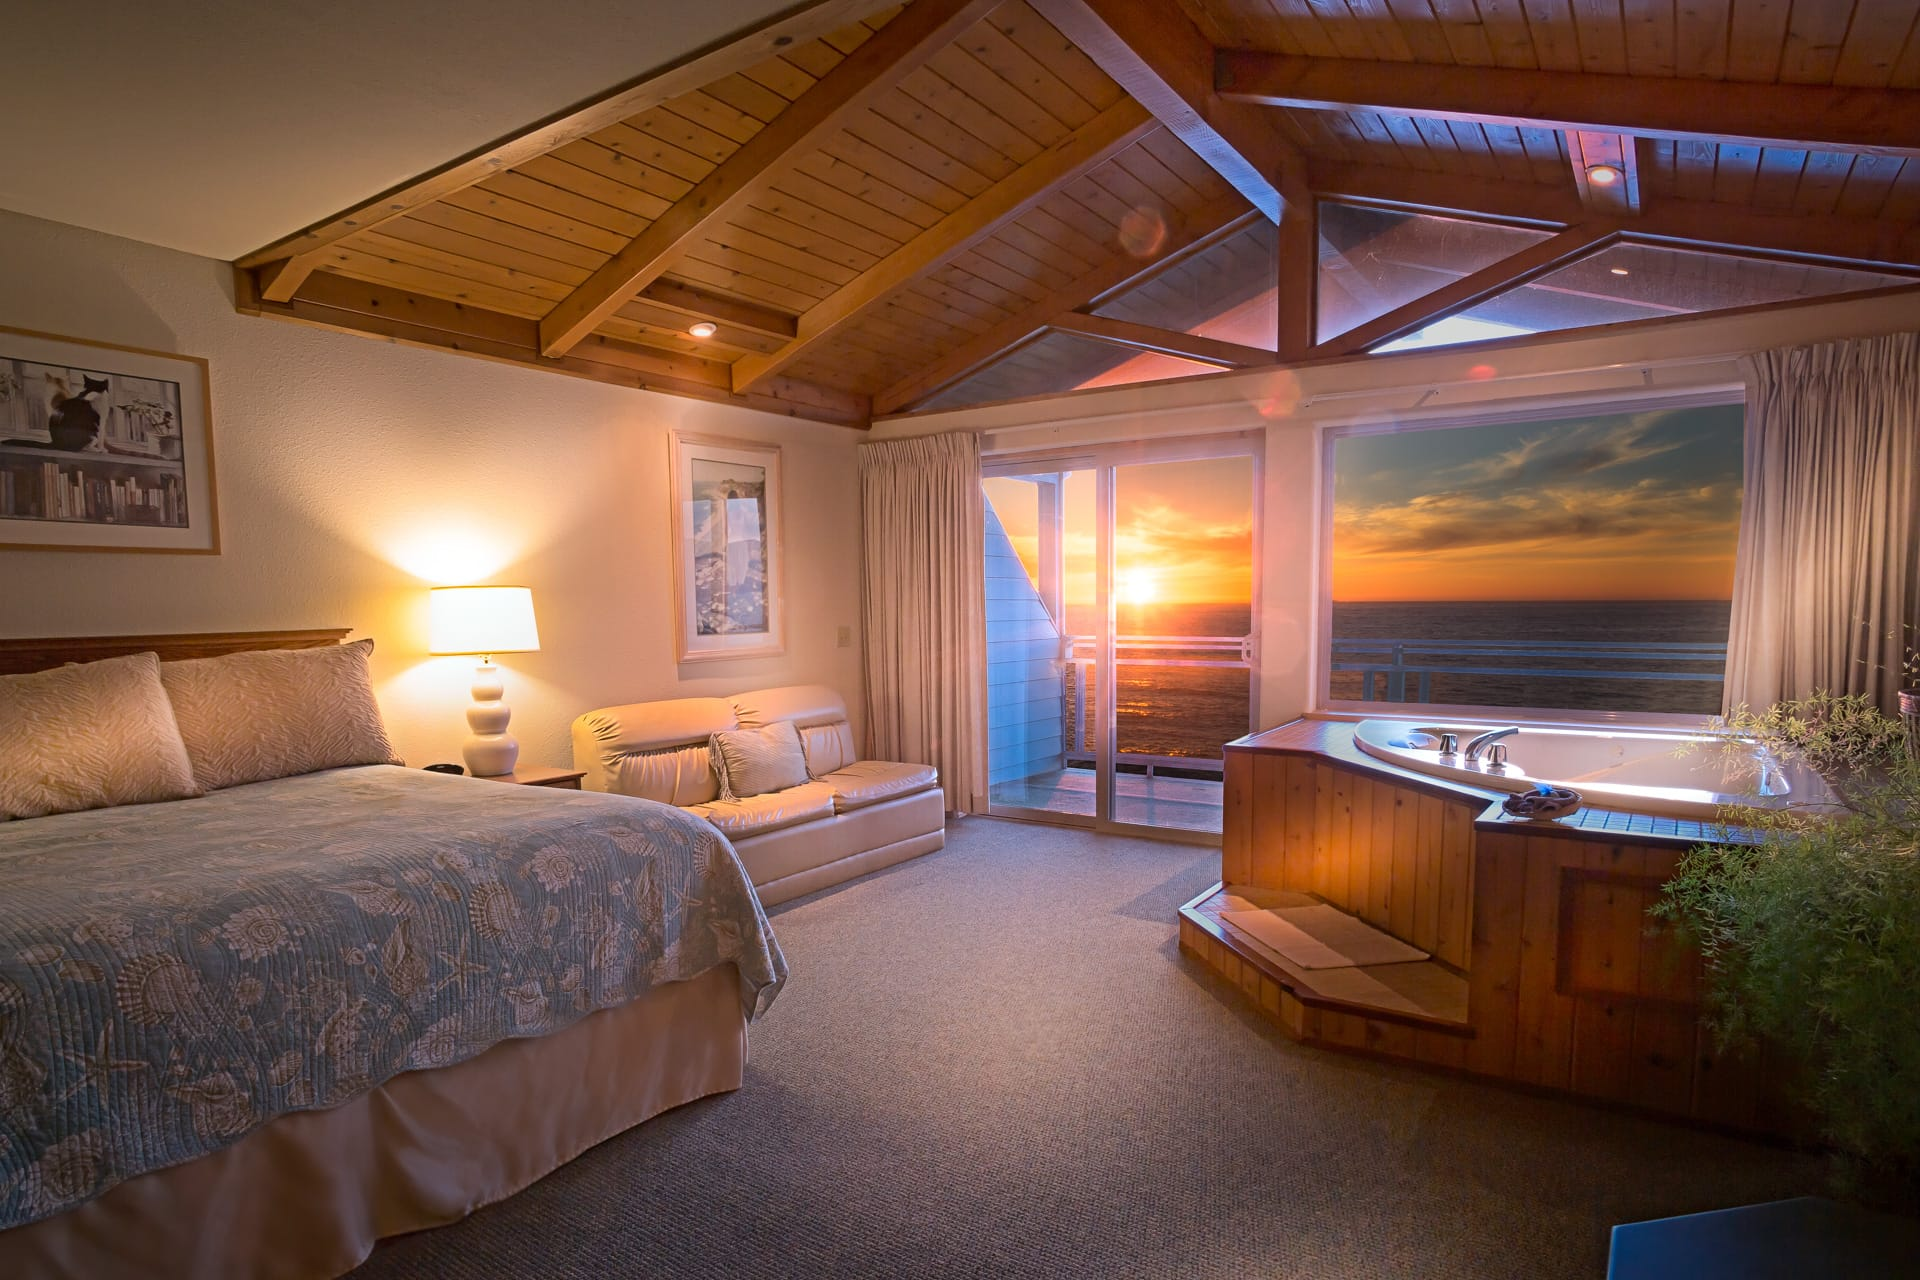 Luxury oceanfront Deluxe Spa Suite hotel room at Inn of the Lost Coast Shelter Cove. In-room hot tub positioned under exposed wood plank beam ceilings and flush against floor to ceiling windows provide an ocean sunset view from hot tub.